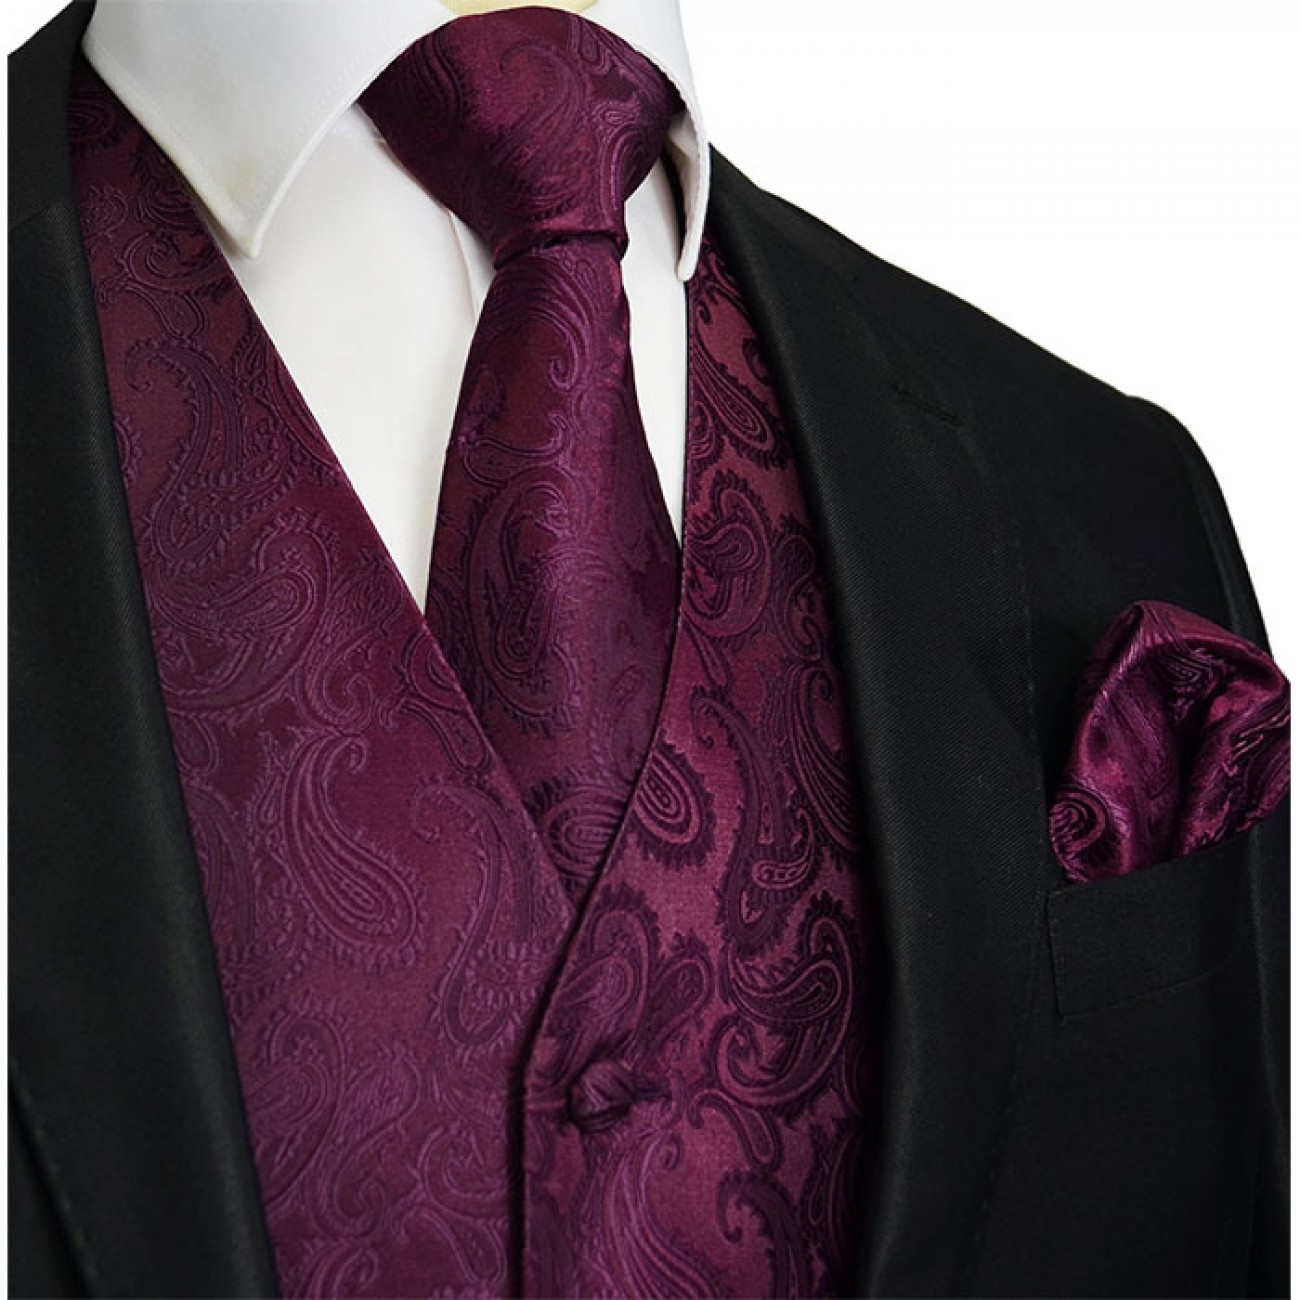 Crown jewel Wedding vest set with mens tie and pocket square